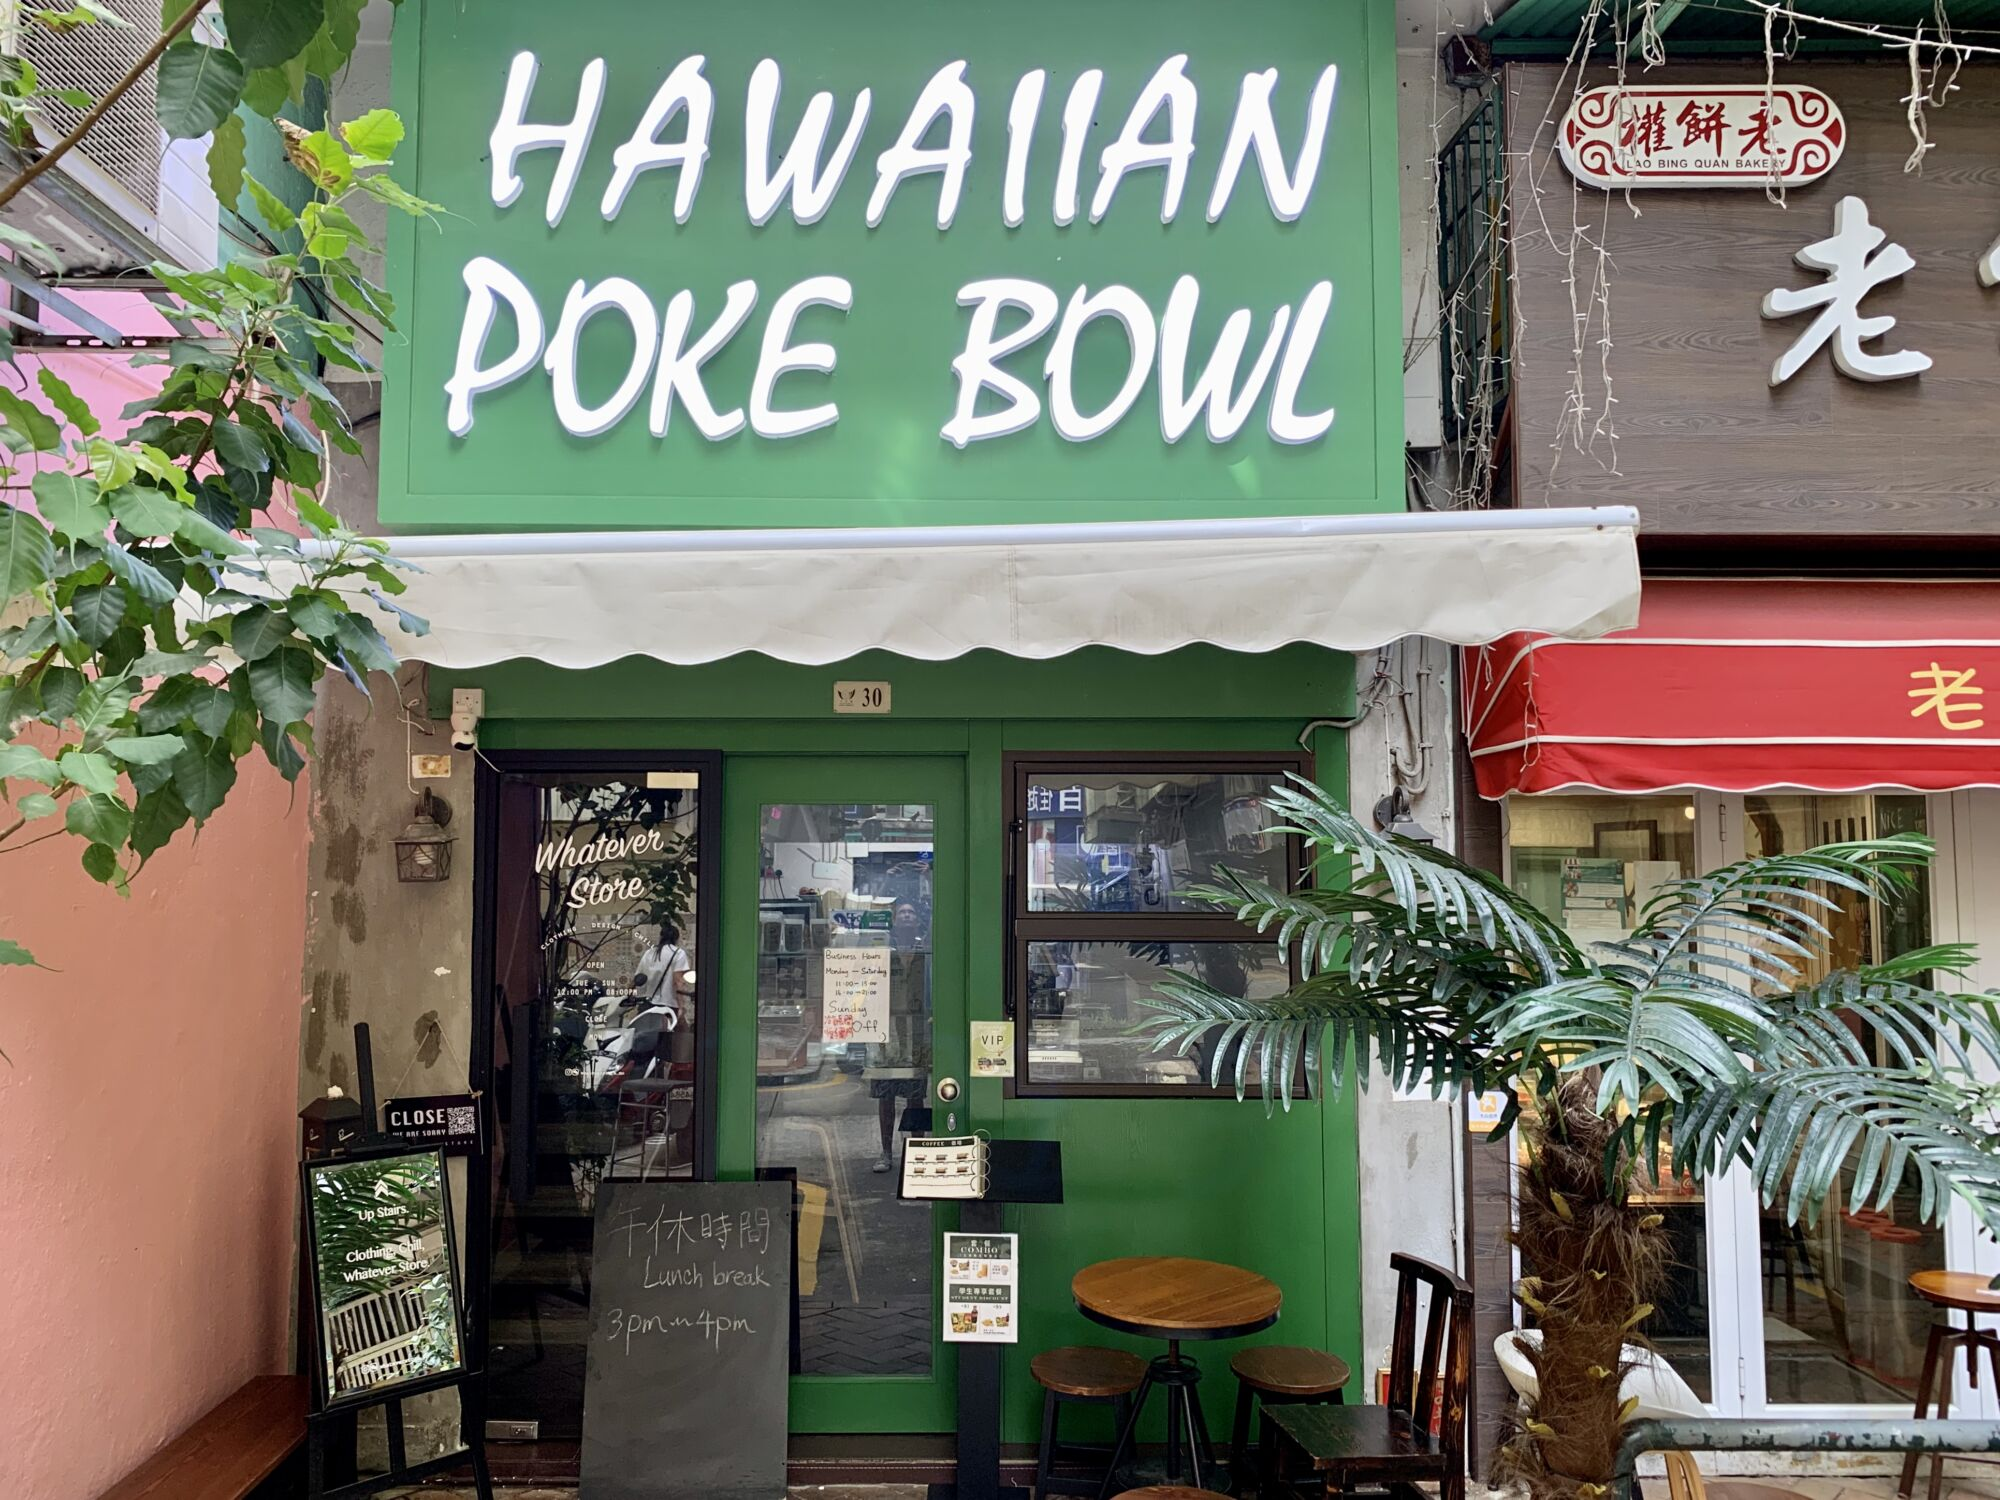 Hawaiian Poke Bowl Frontshop Macau Lifestyle